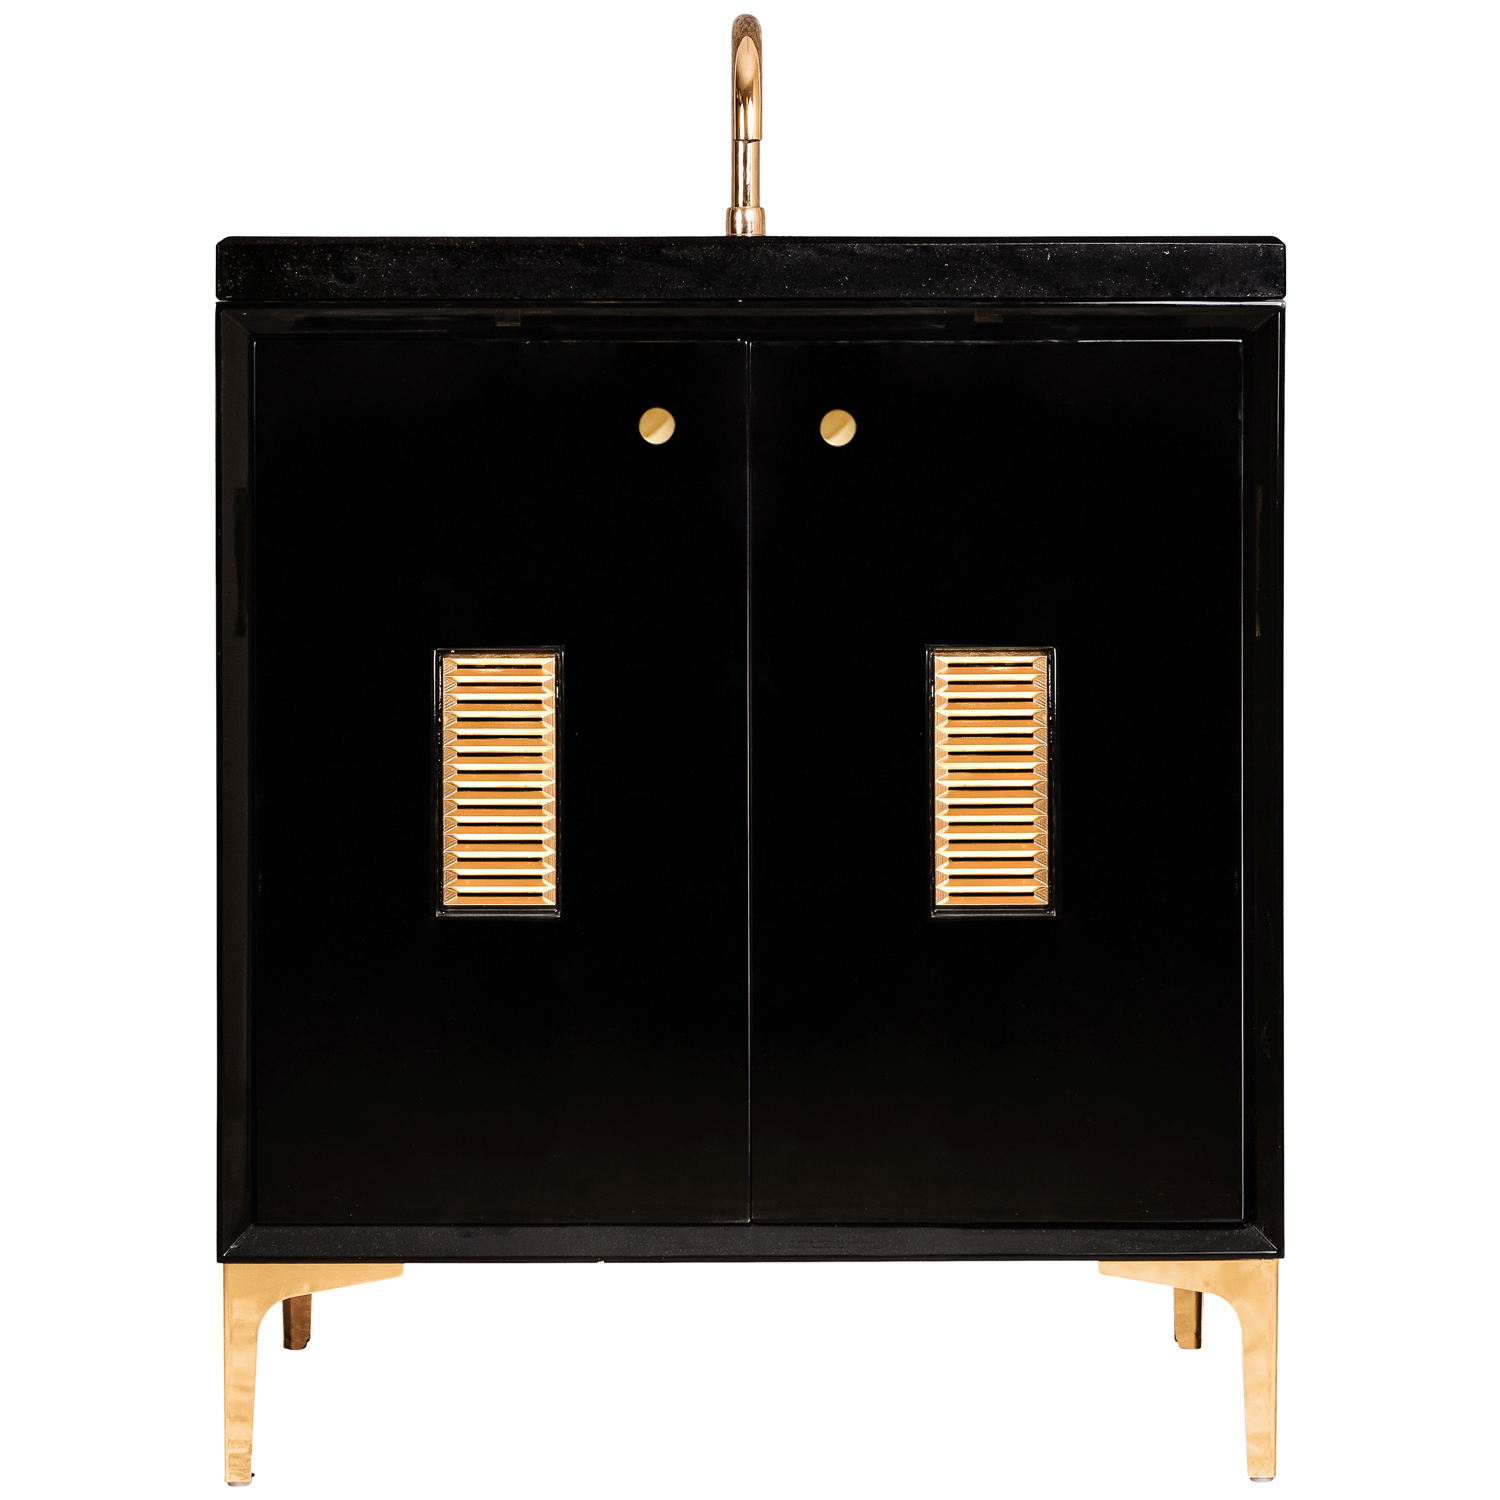 """VAN30B-013 30"""" Black Frame With Louver - Shown with PB (Polished Brass)"""